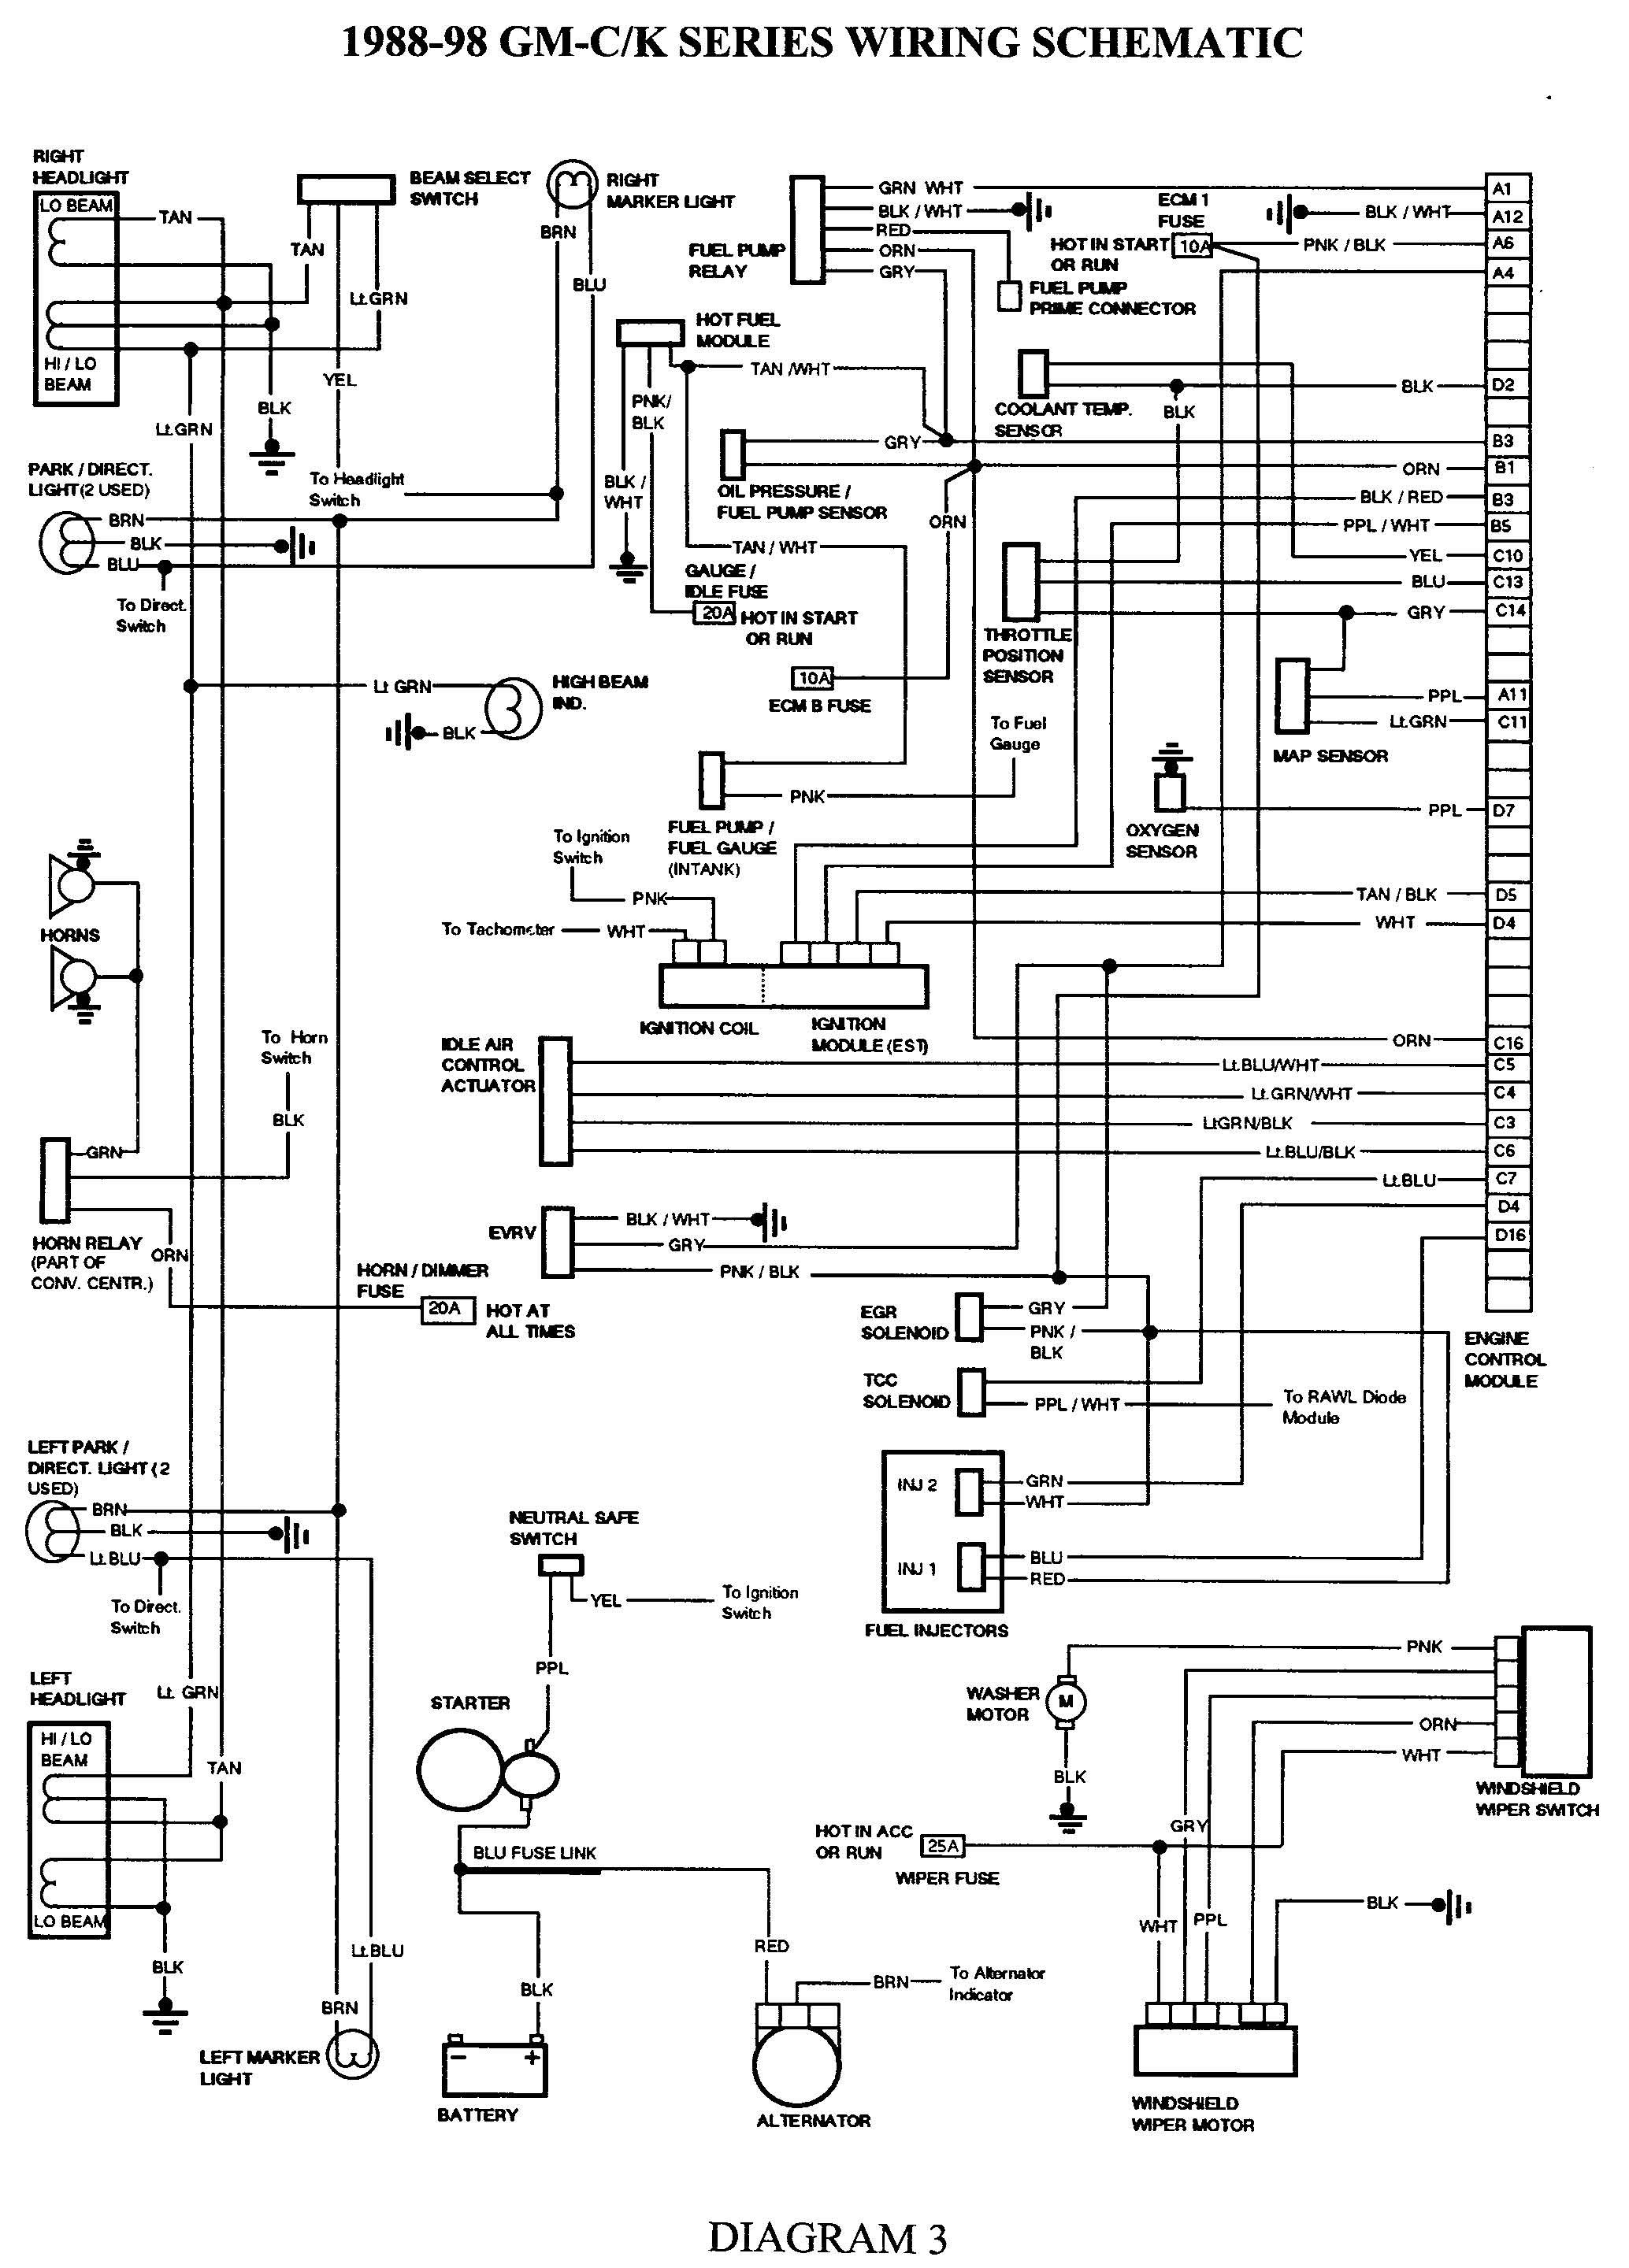 b2f2e5dbdc07dada83ef514f6d4ce3d4 electric wiring diagram instrument panel auto repair Basic Electrical Wiring Diagrams at mifinder.co